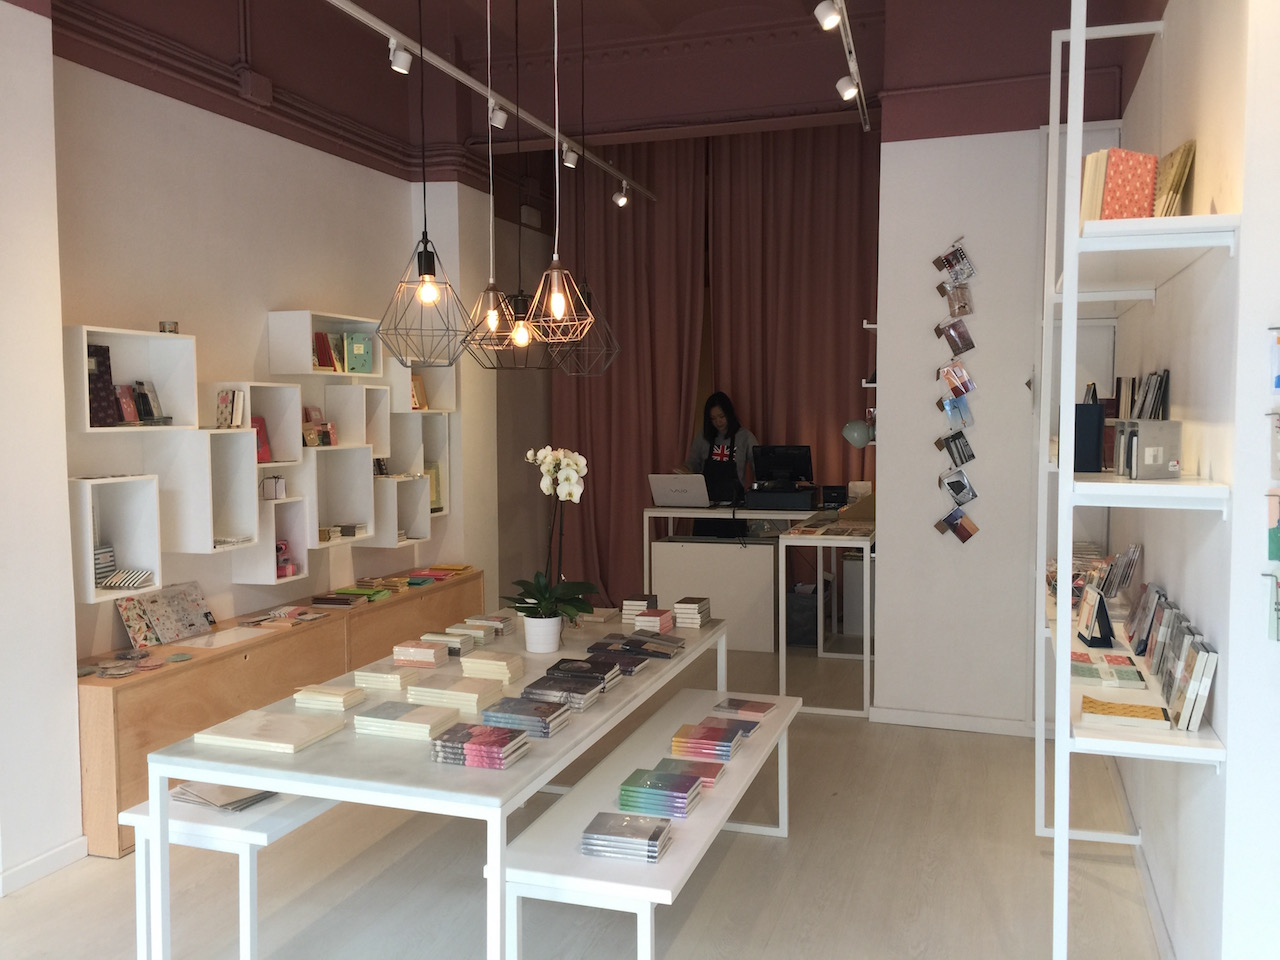 entropía-paperstore-rockinchiclifestyle-8-pg